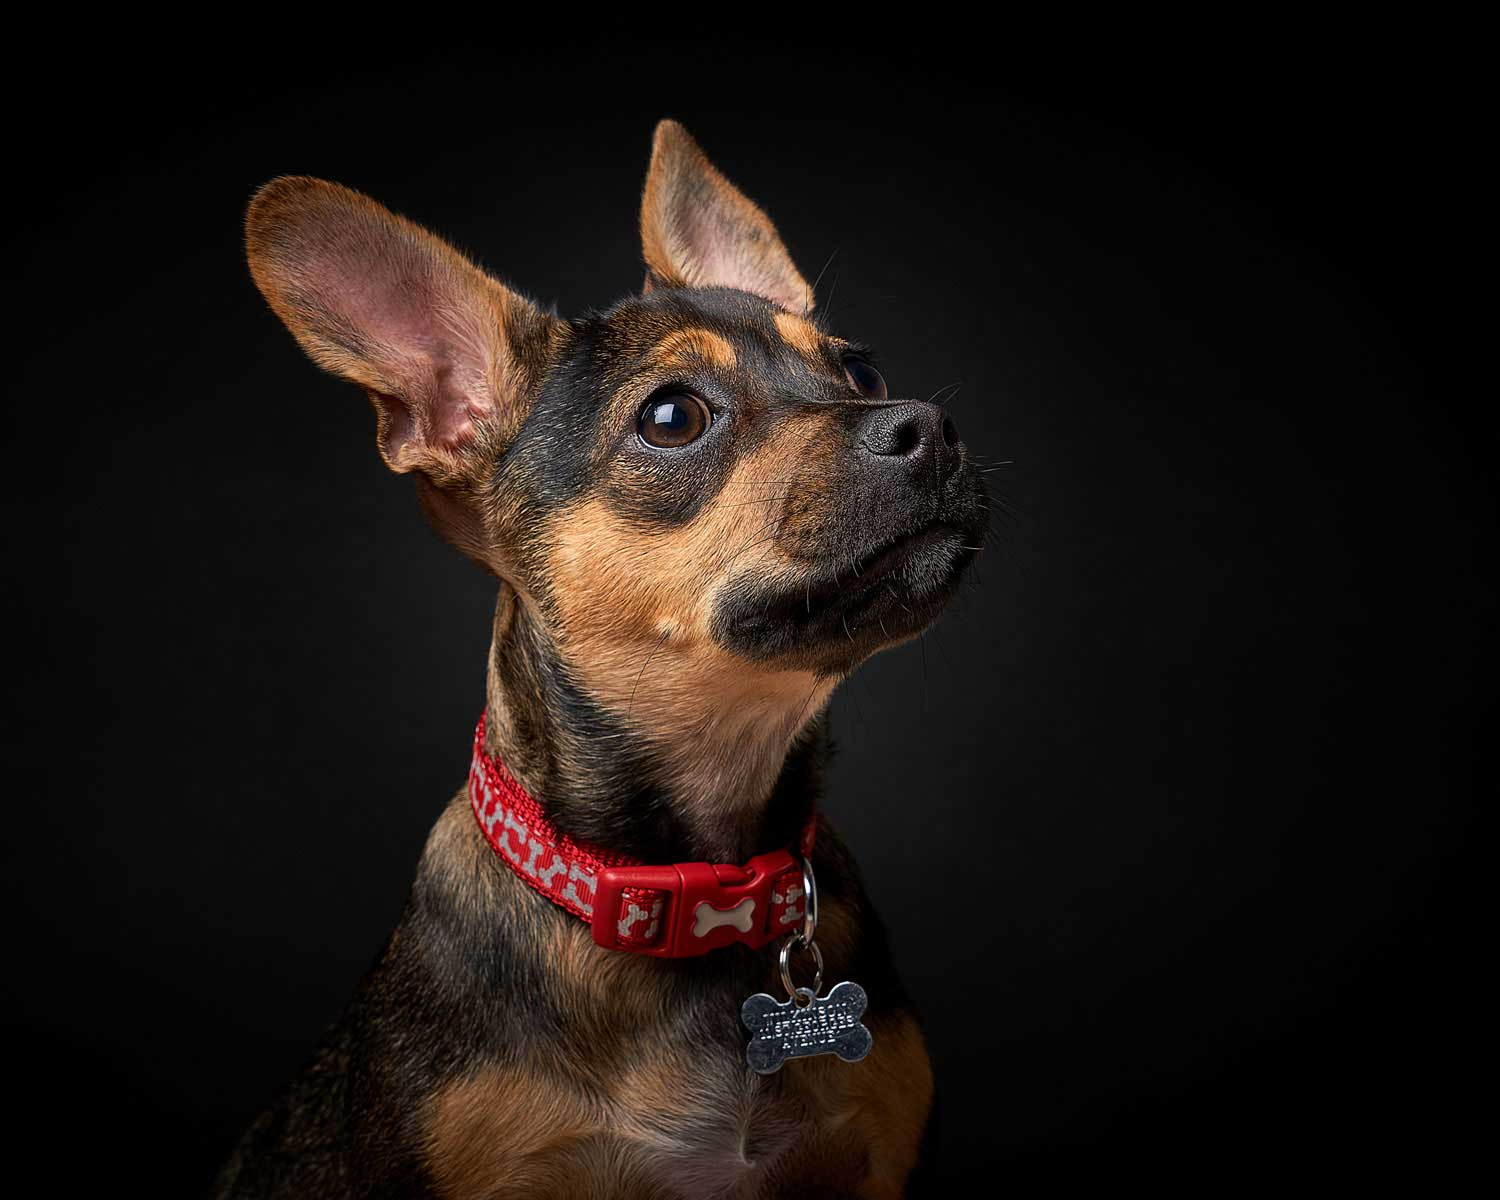 Dog Portrait Studio Photography 0007